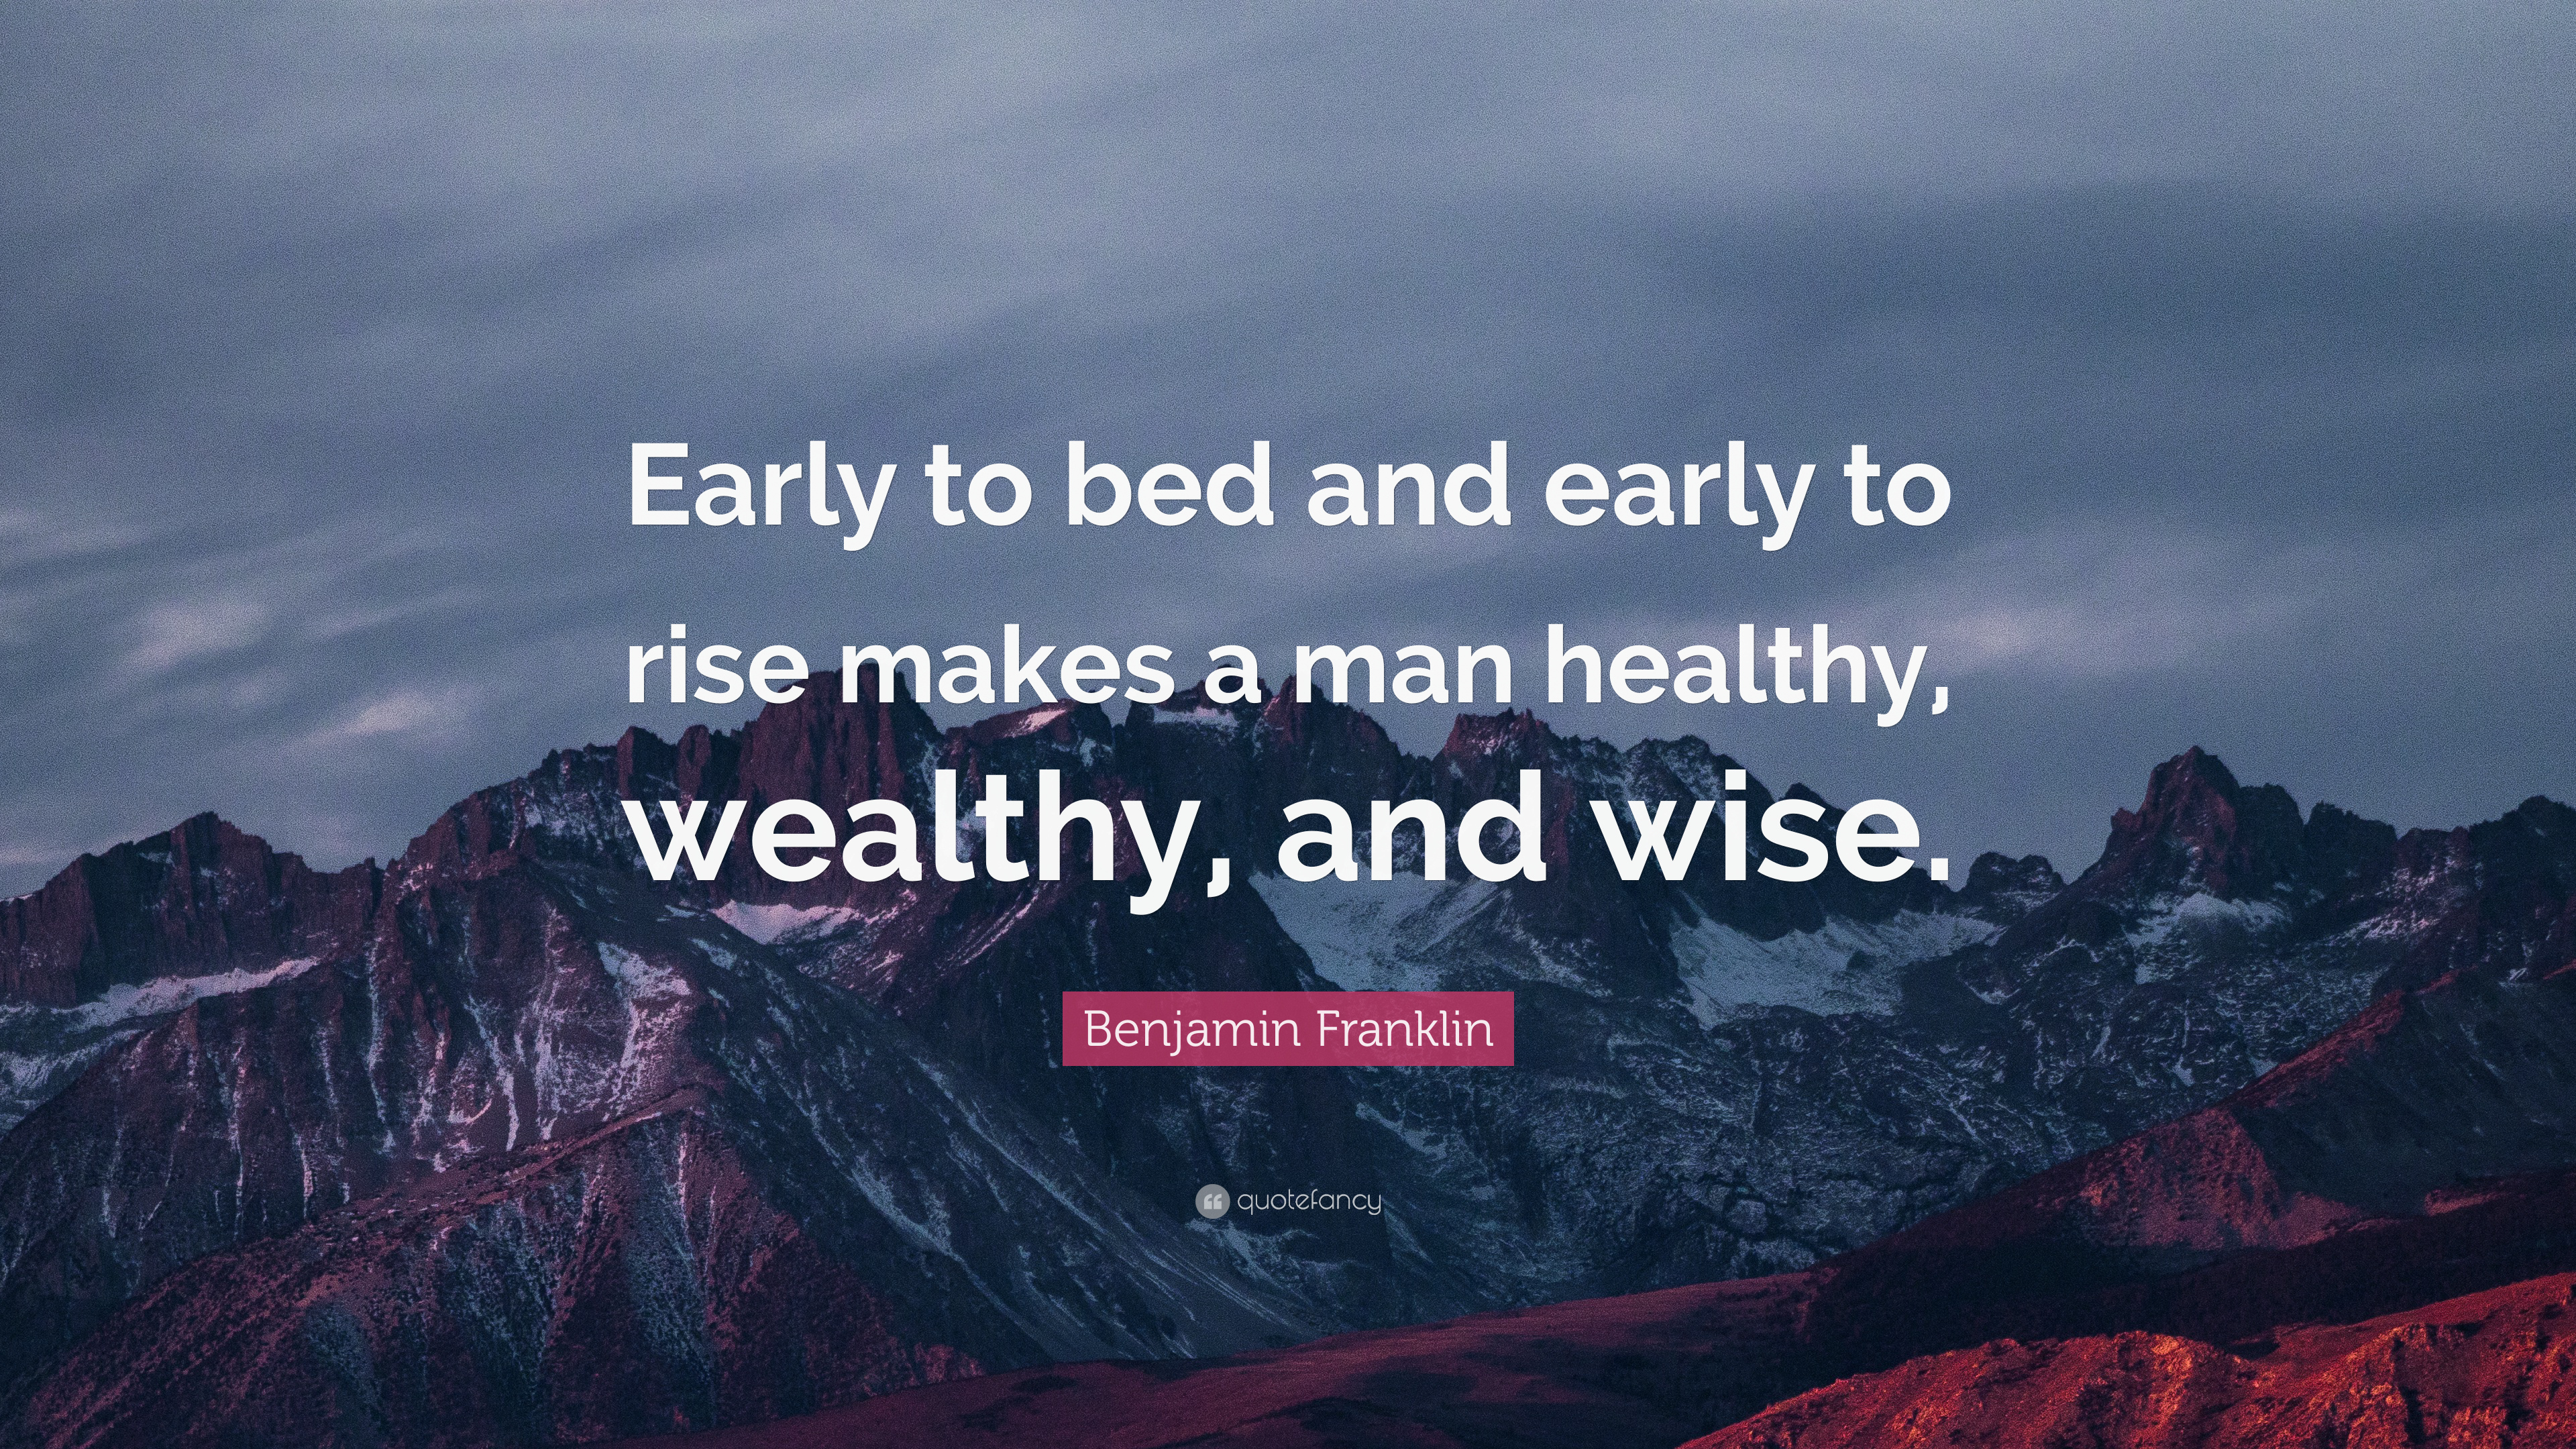 Benjamin Franklin Quote Early to bed and